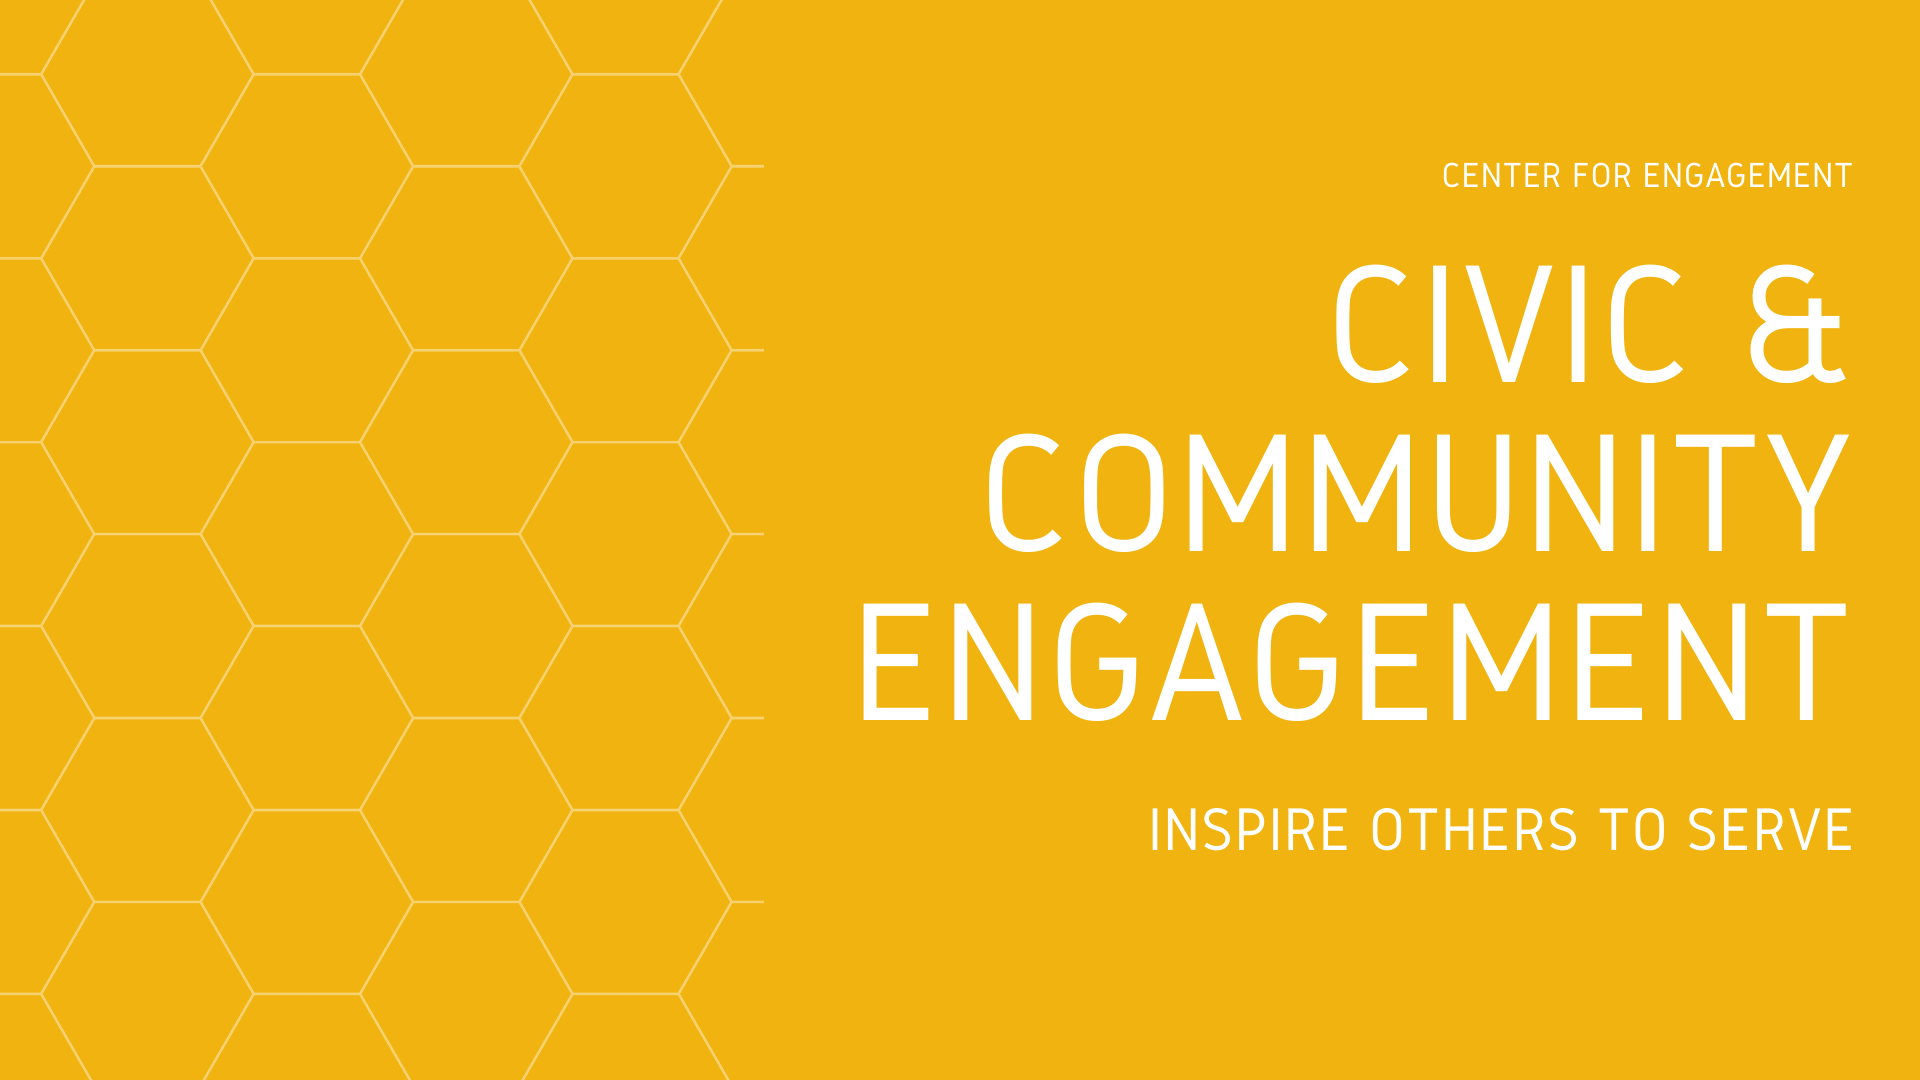 Community and Civic Engagement: Inspire Others to Serve